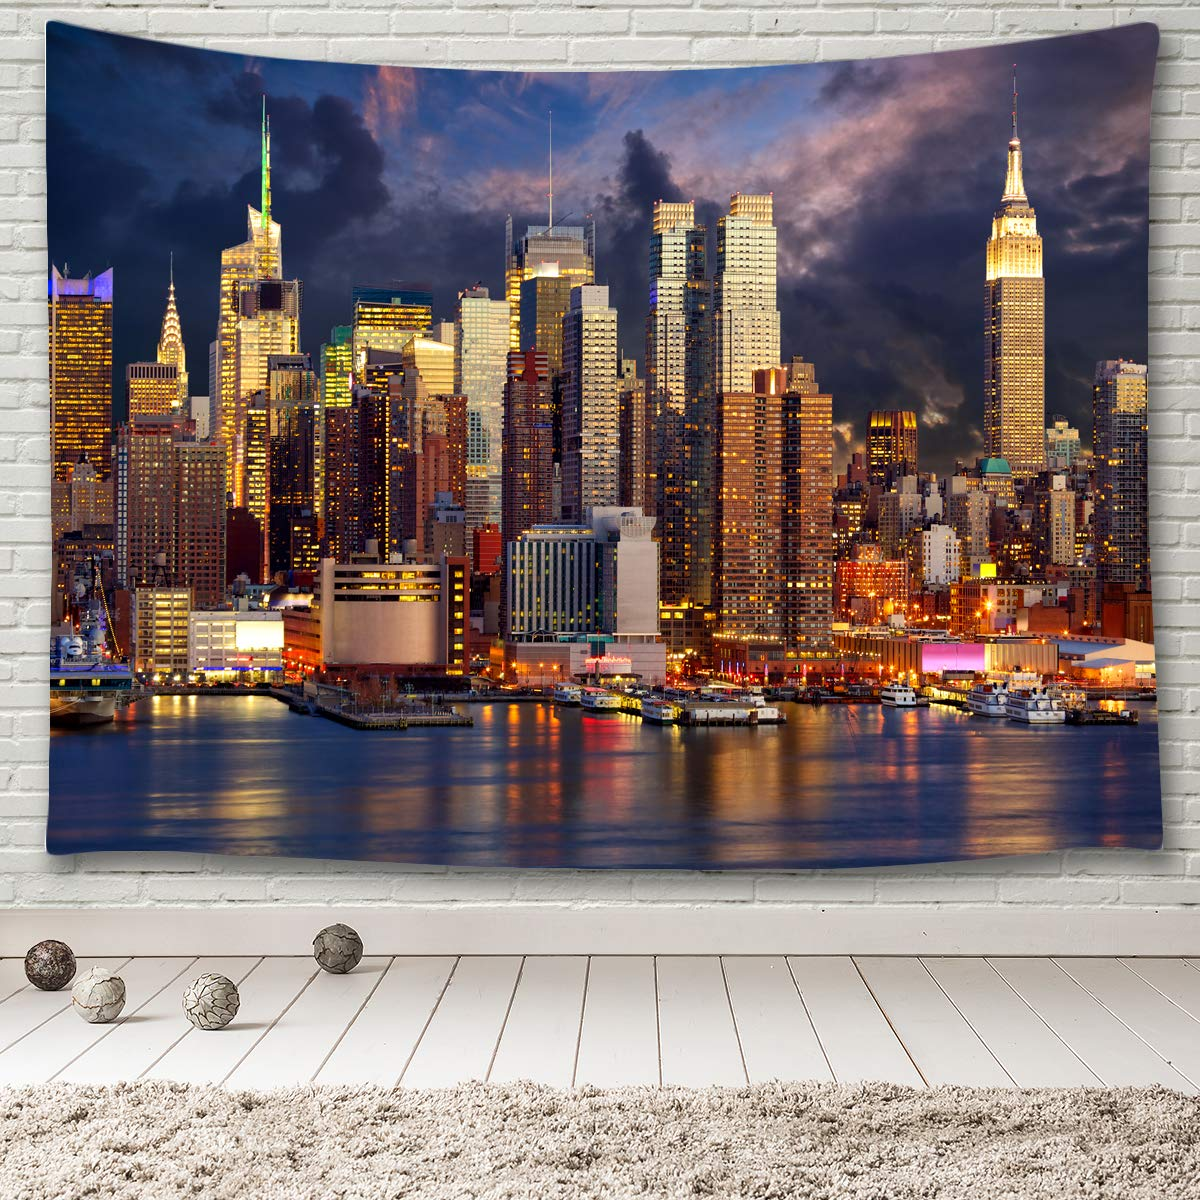 MINAKO Manhattan Skyline Tapestry Wall Hanging,New York Cityscape Panorama View NYC Urban Skyscrapers Harbor Buildings Architecture Reflection Over Hudson River Tapestries 90x60 Extra Large Size